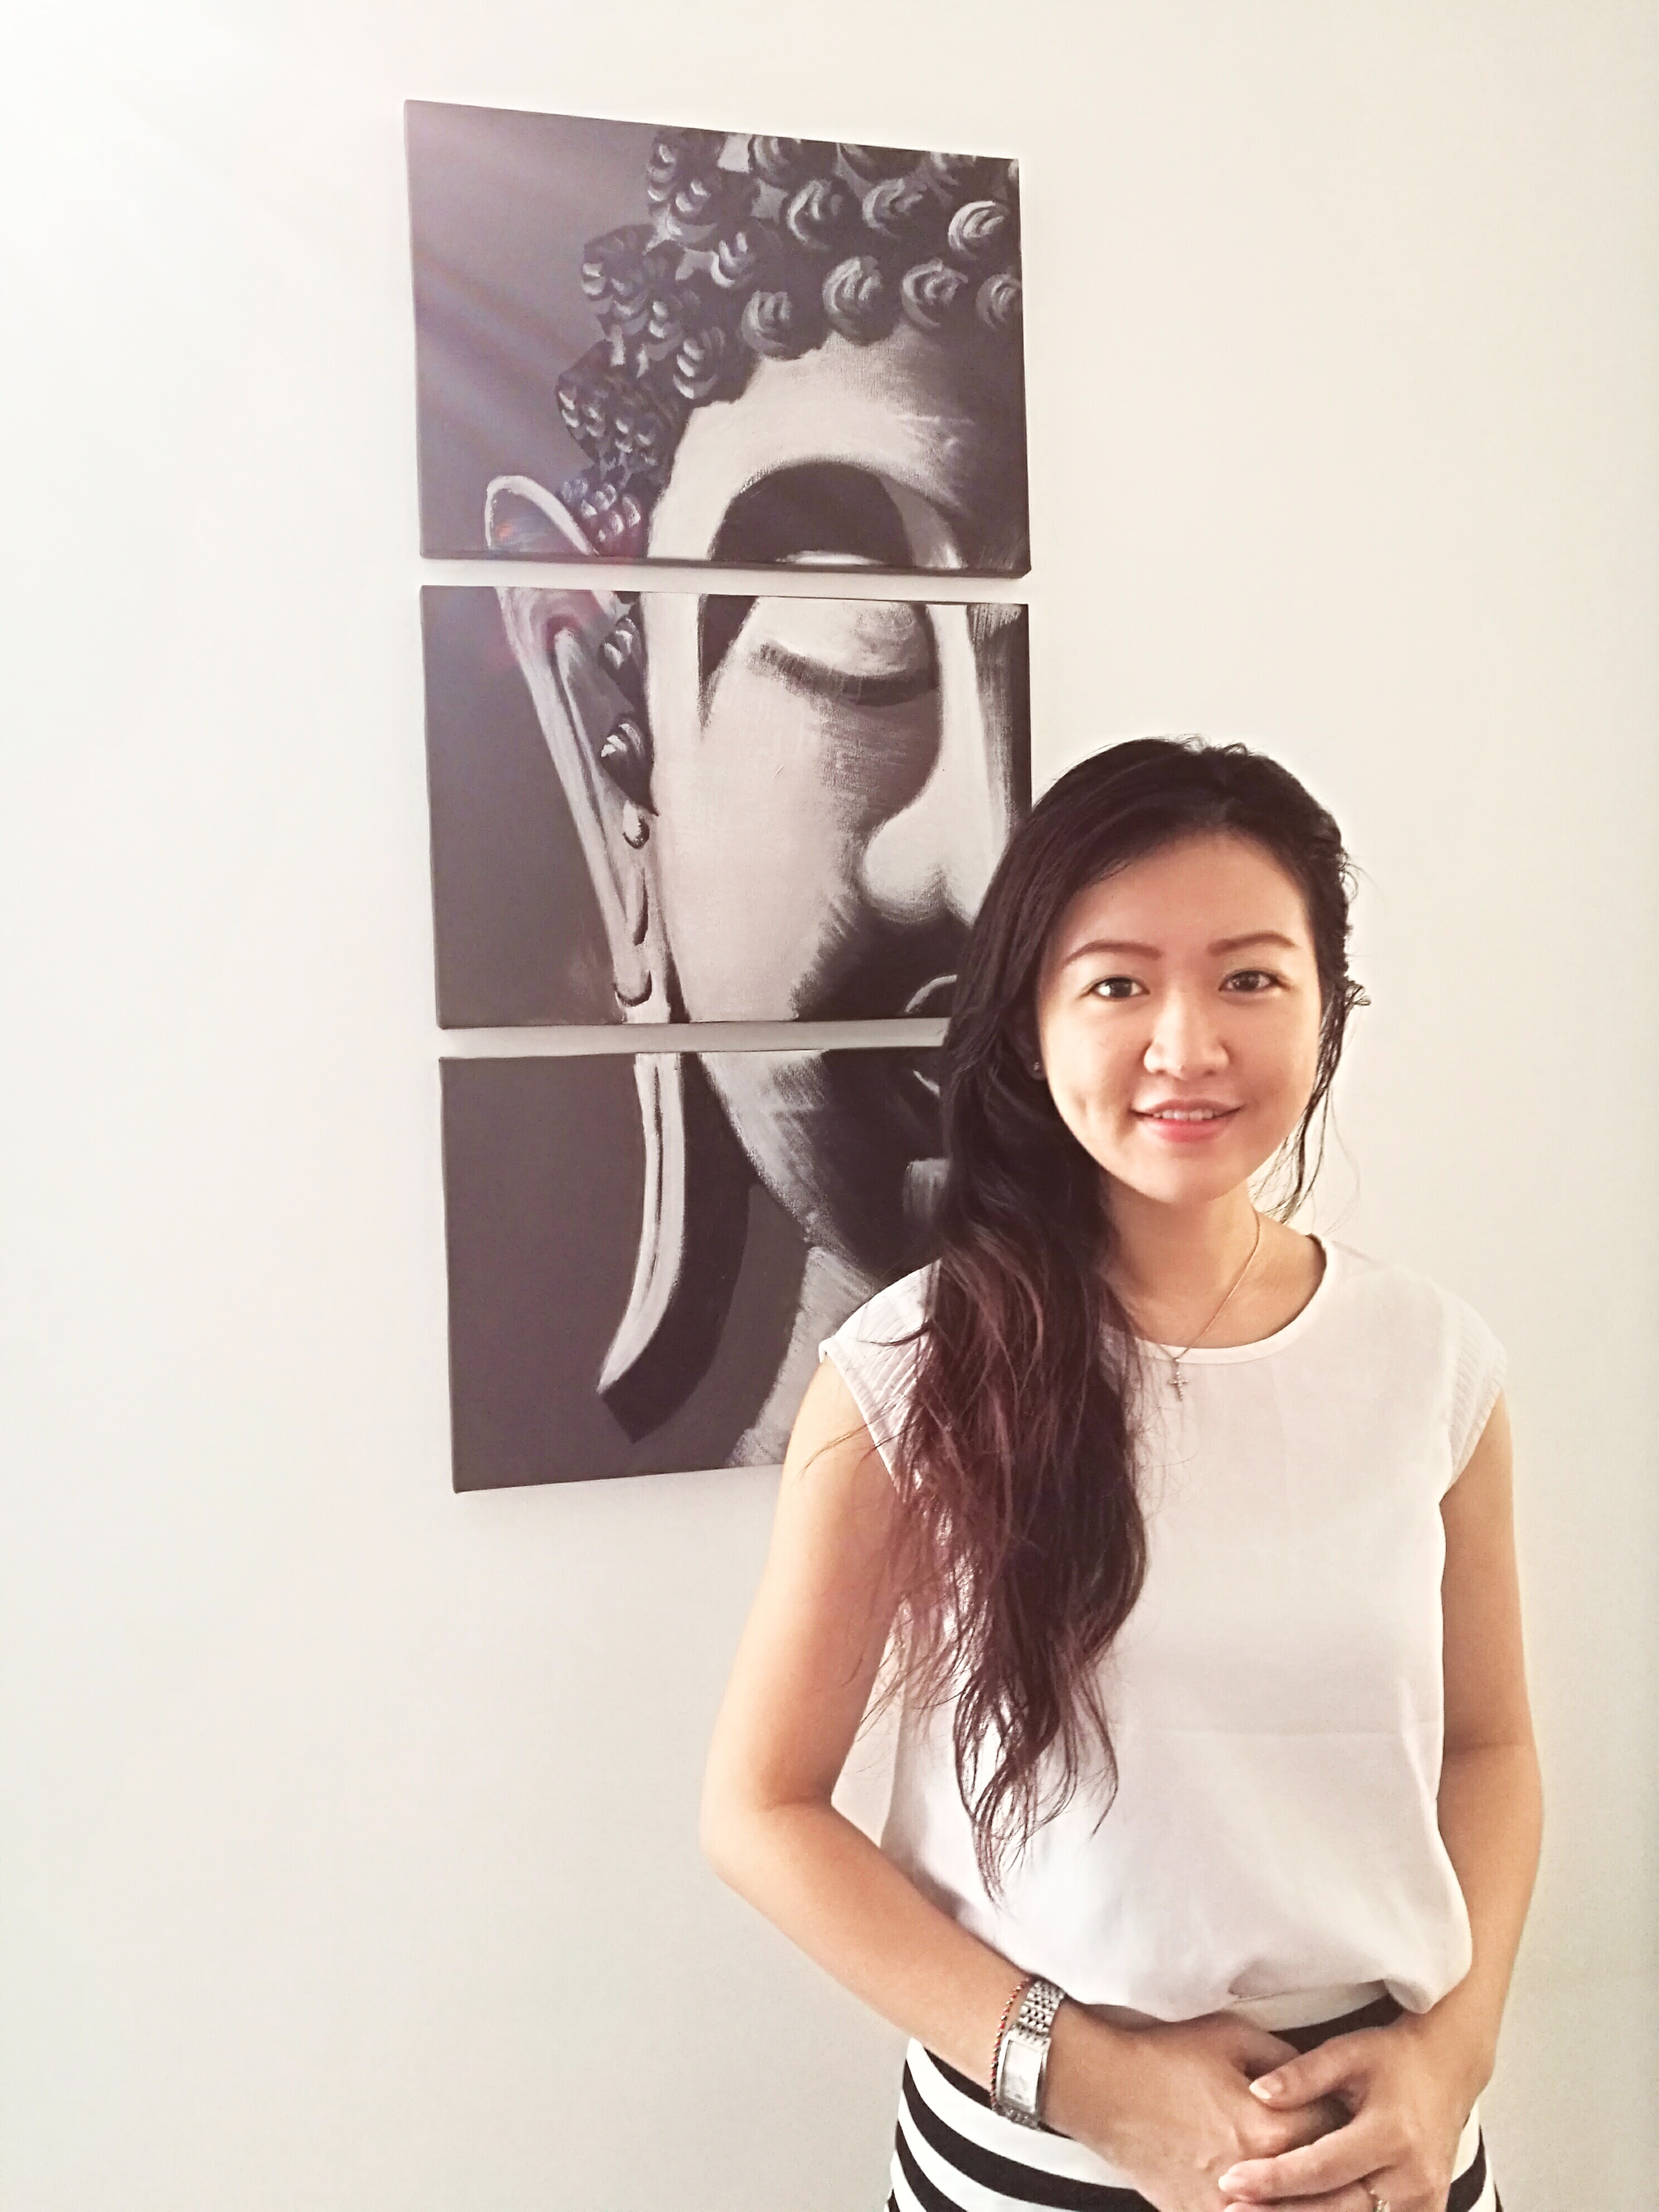 midaz orion co-founder Ling